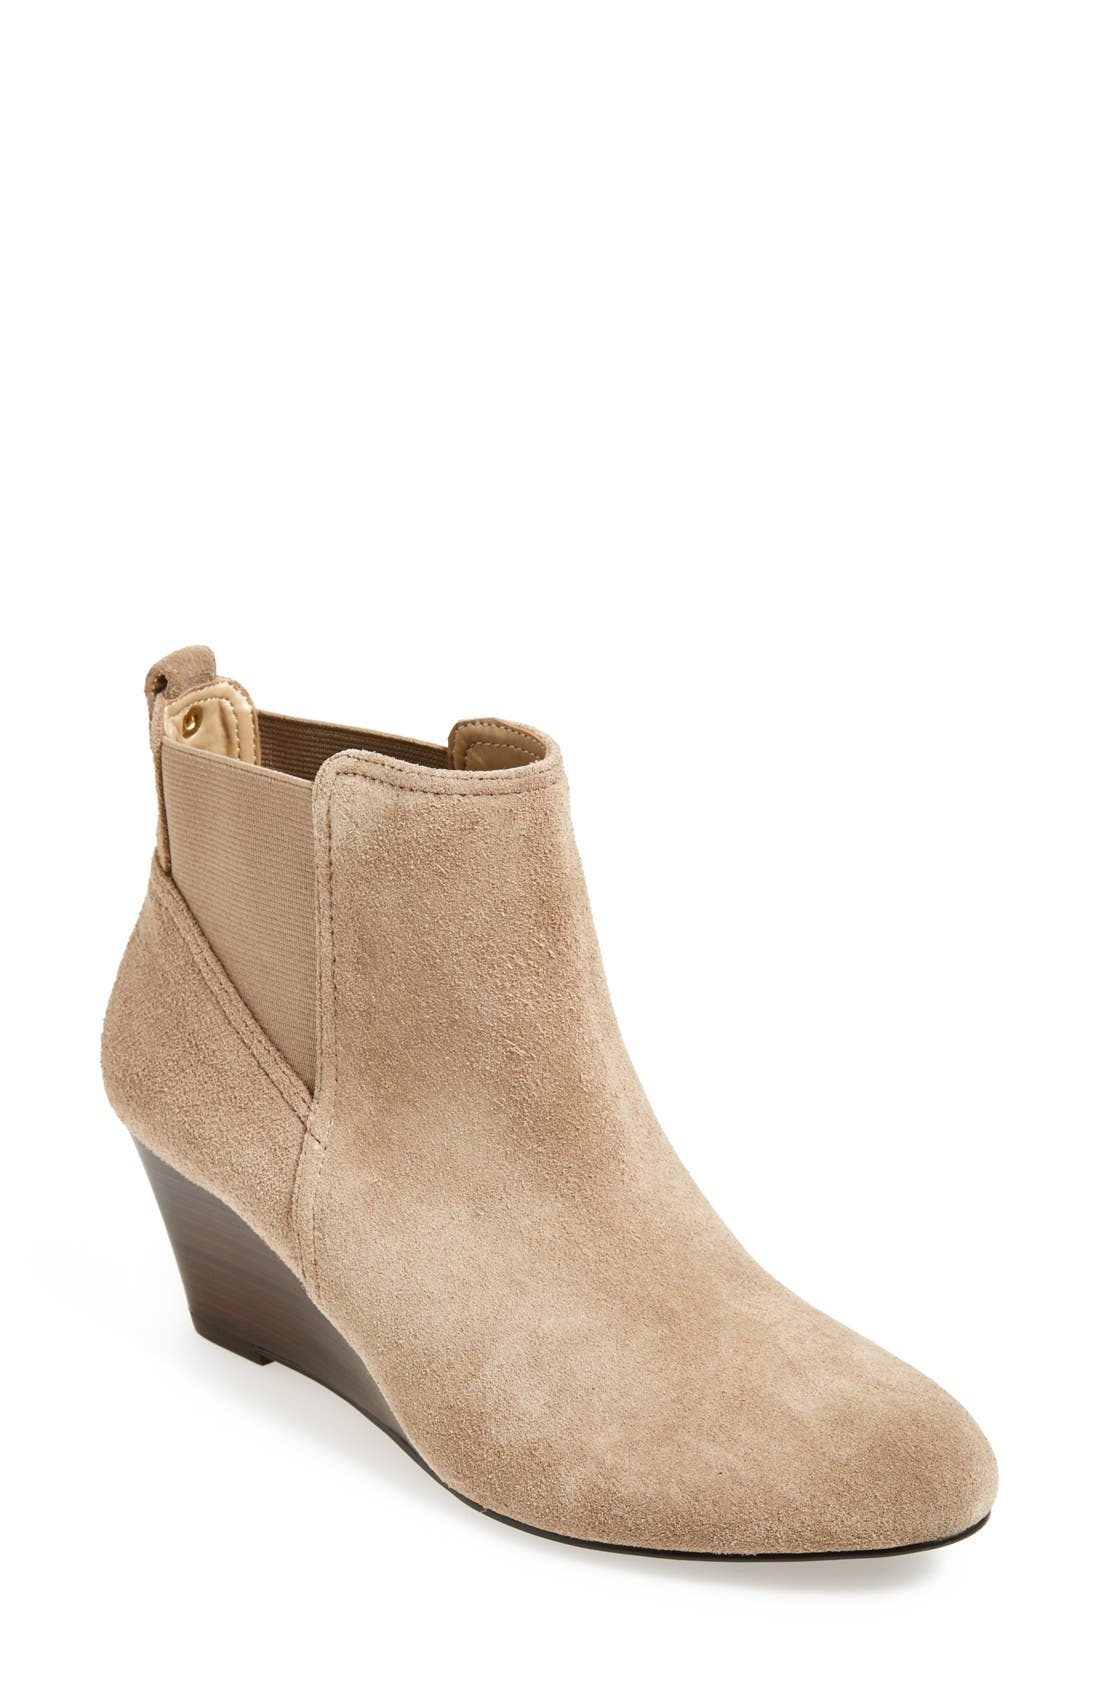 Main Image - Sole Society 'Addison' Bootie